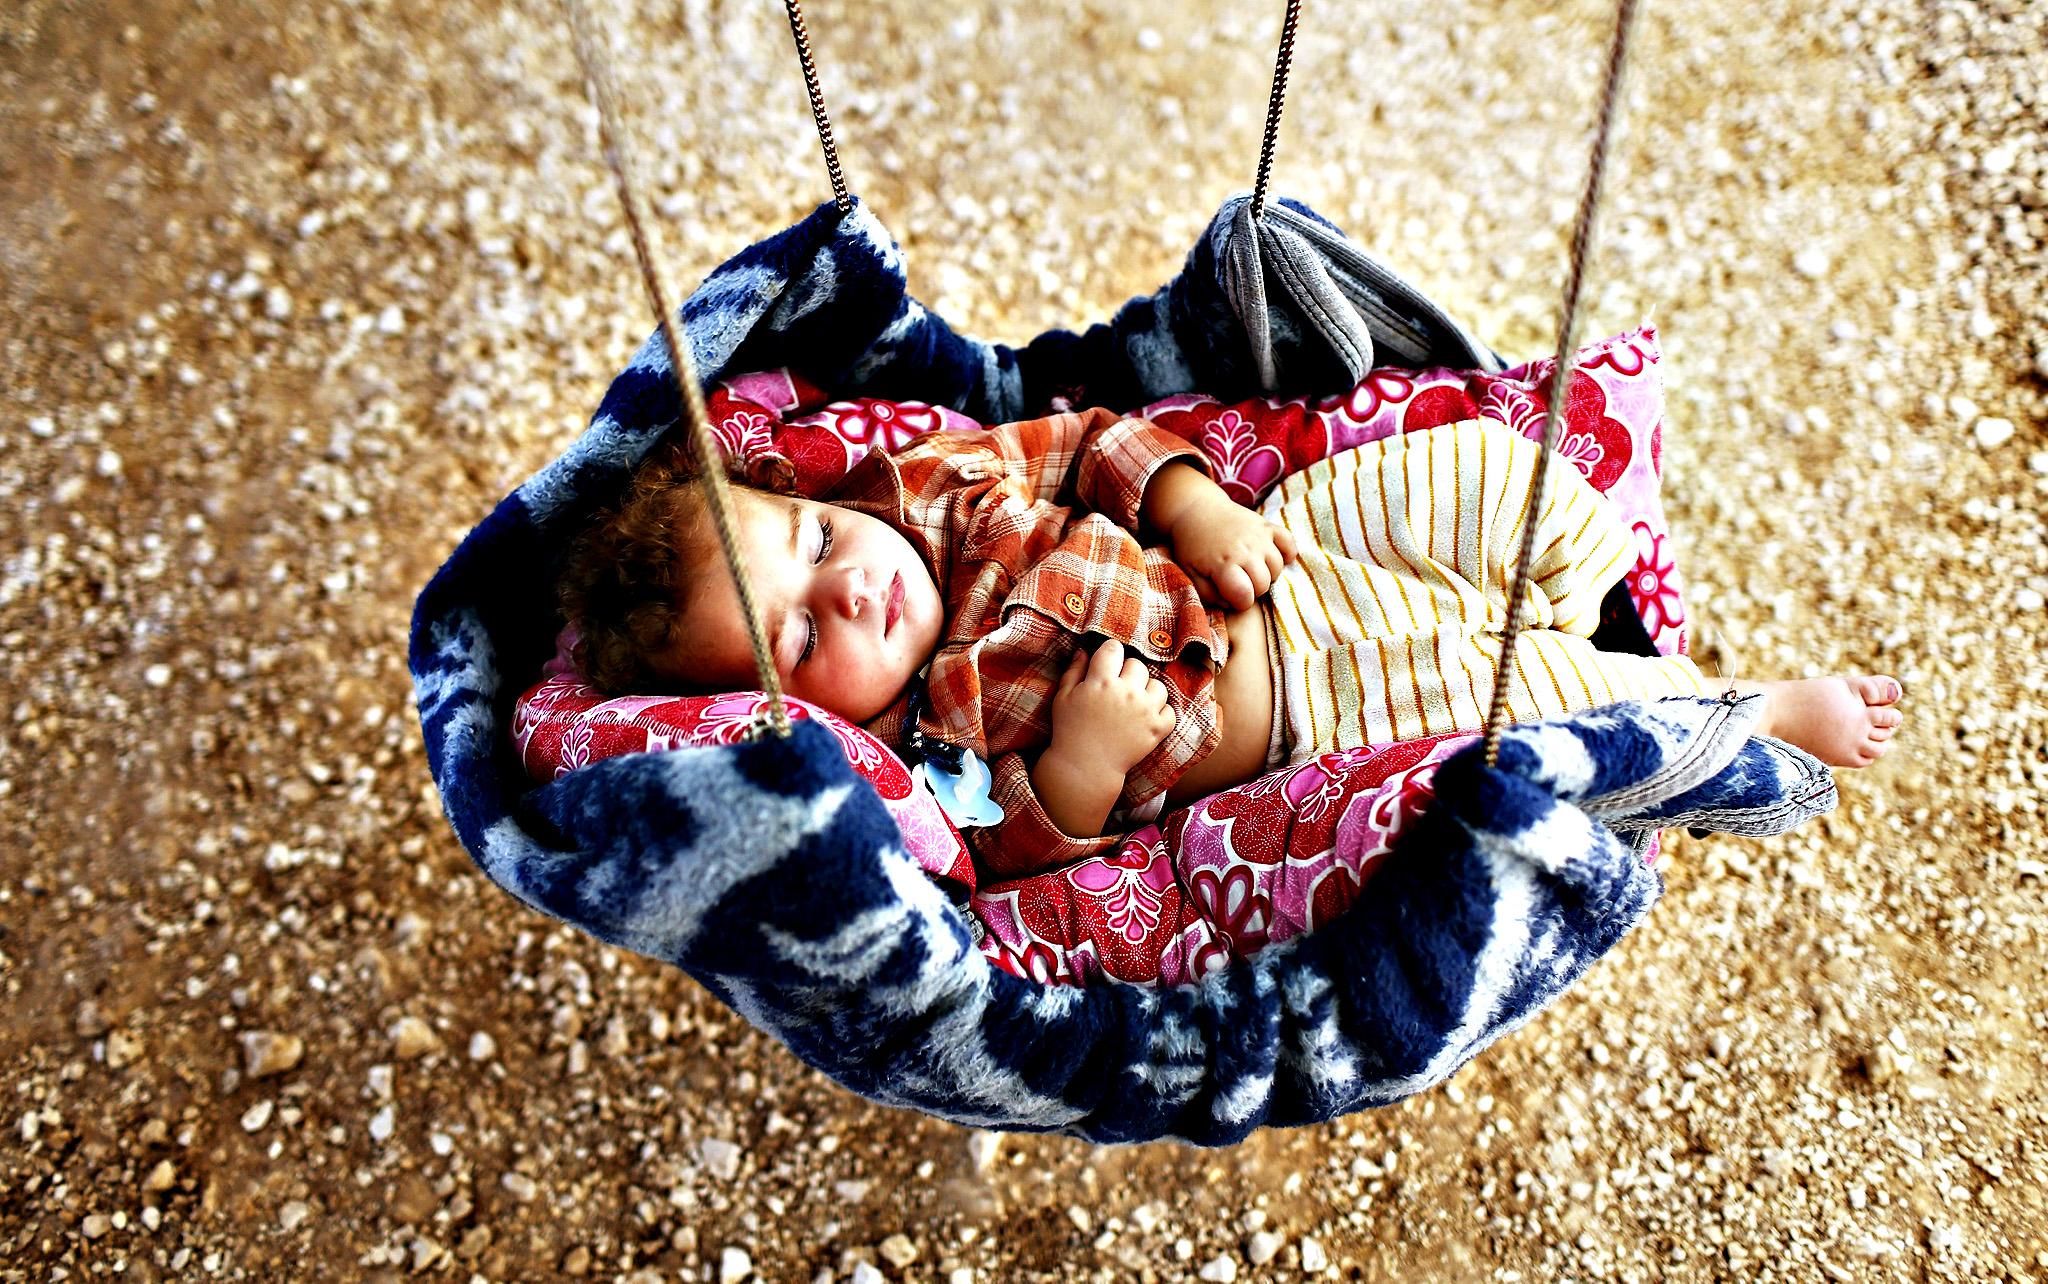 A Syrian toddler sleeps in a makeshift cradle installed in a tent set up for refugees in the Suruc district, near Sanliurfa, Turkey, 01 October 2014. Turkey according to the UN agency for refugees (UNHCR) is facing the 'biggest influx' of Syrian refugees since the start of the war three years ago. The fighting in the besieged Syrian border town of Kobane has pushed more than 160,000 Syrian refugees, mostly Kurds, into Turkey, raising the overall number of Syrian refugees in the country to about 1.5 million.